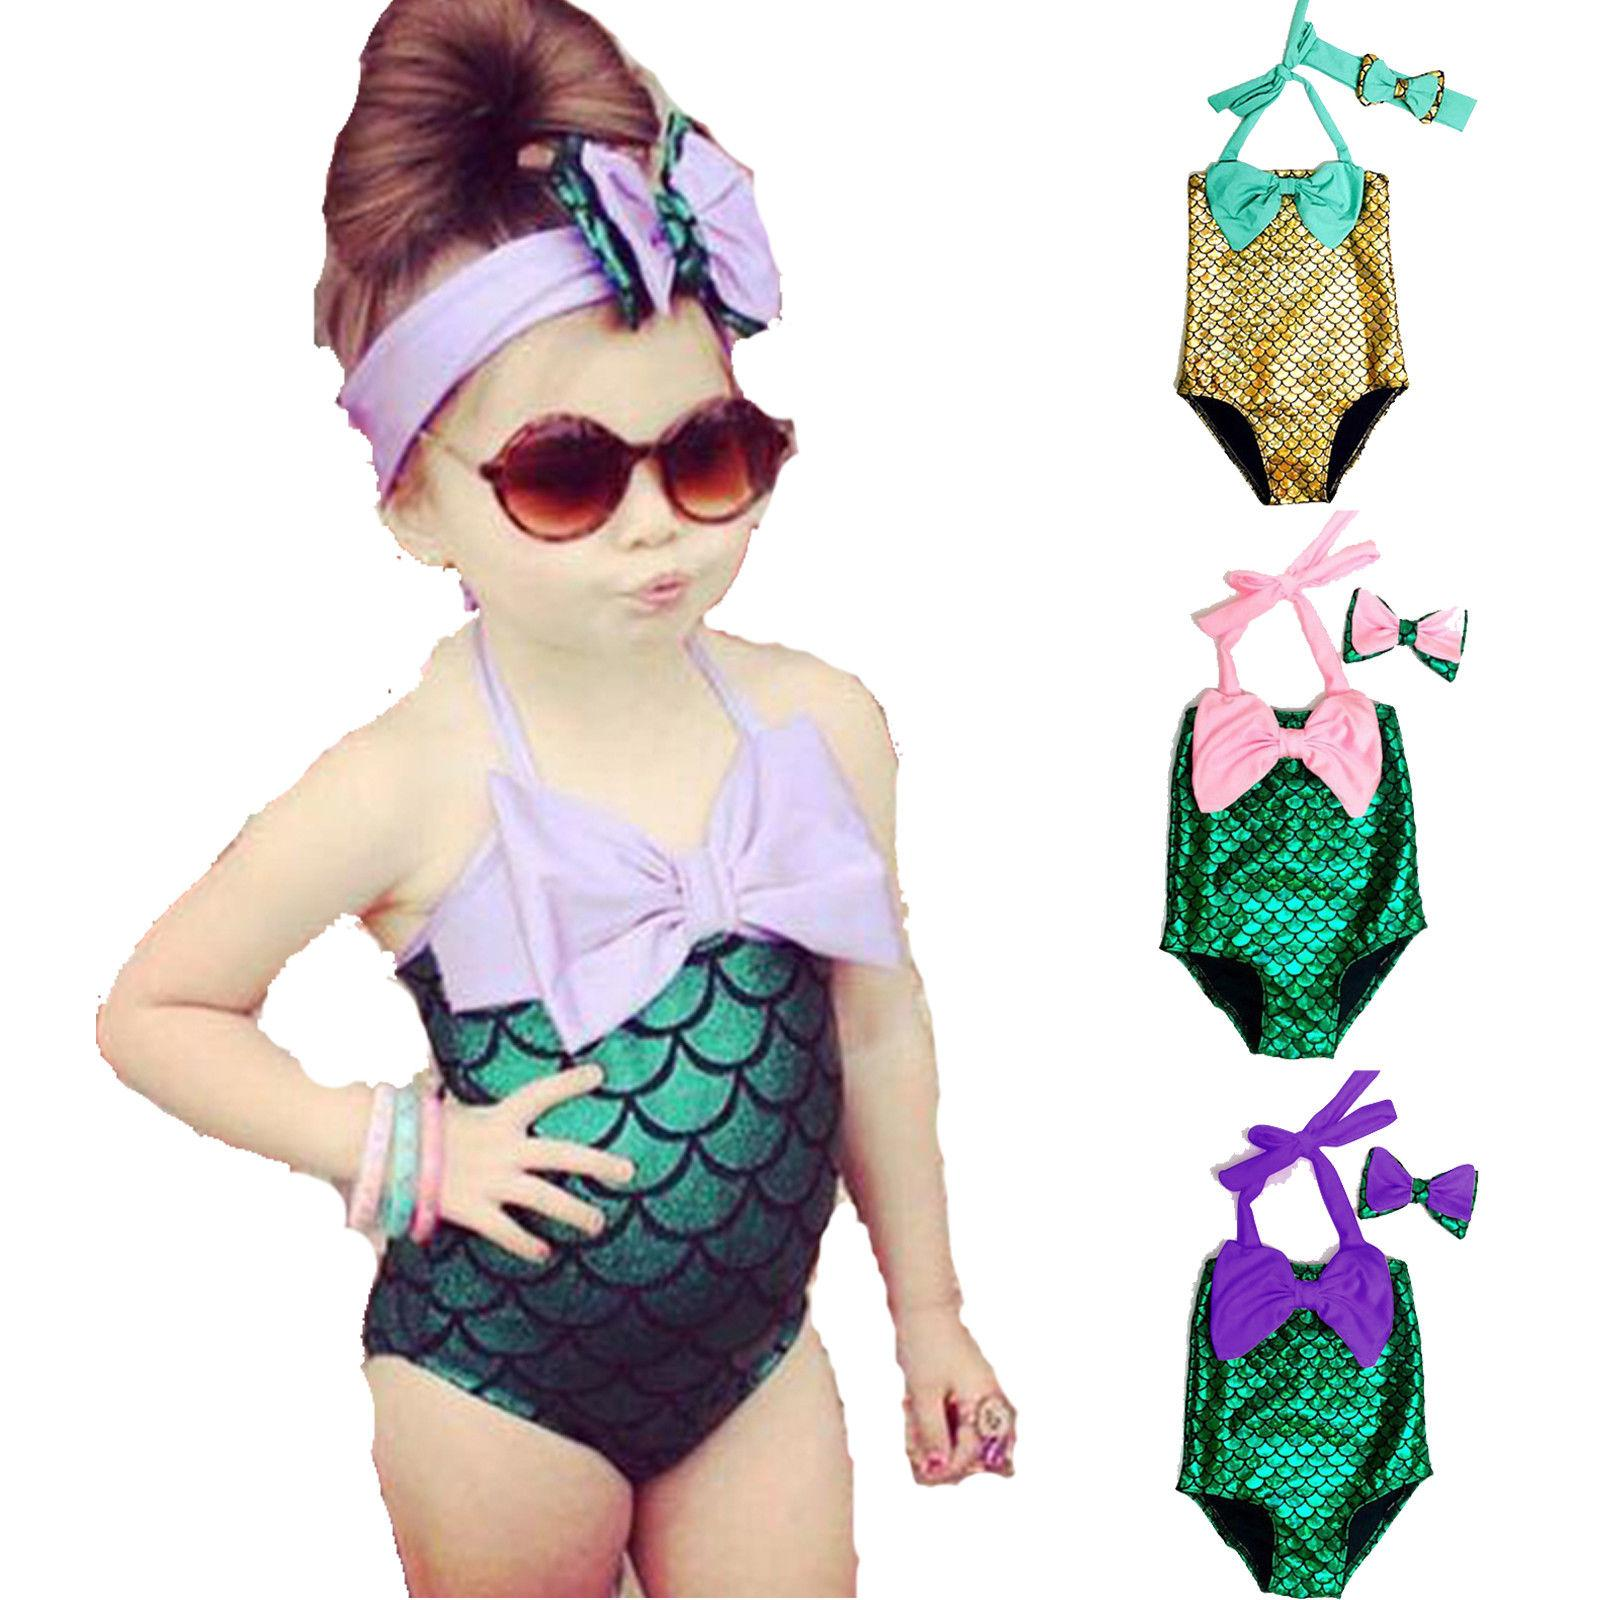 Shop One Pieces Online Baby Girls Mermaid Bikini Suit Swimming Princess Costume Swimsuit Kids Toddler Girls Swimming Suits 3styles Ffa071 With As Cheap As ...  sc 1 st  DHgate.com & Shop One Pieces Online Baby Girls Mermaid Bikini Suit Swimming ...